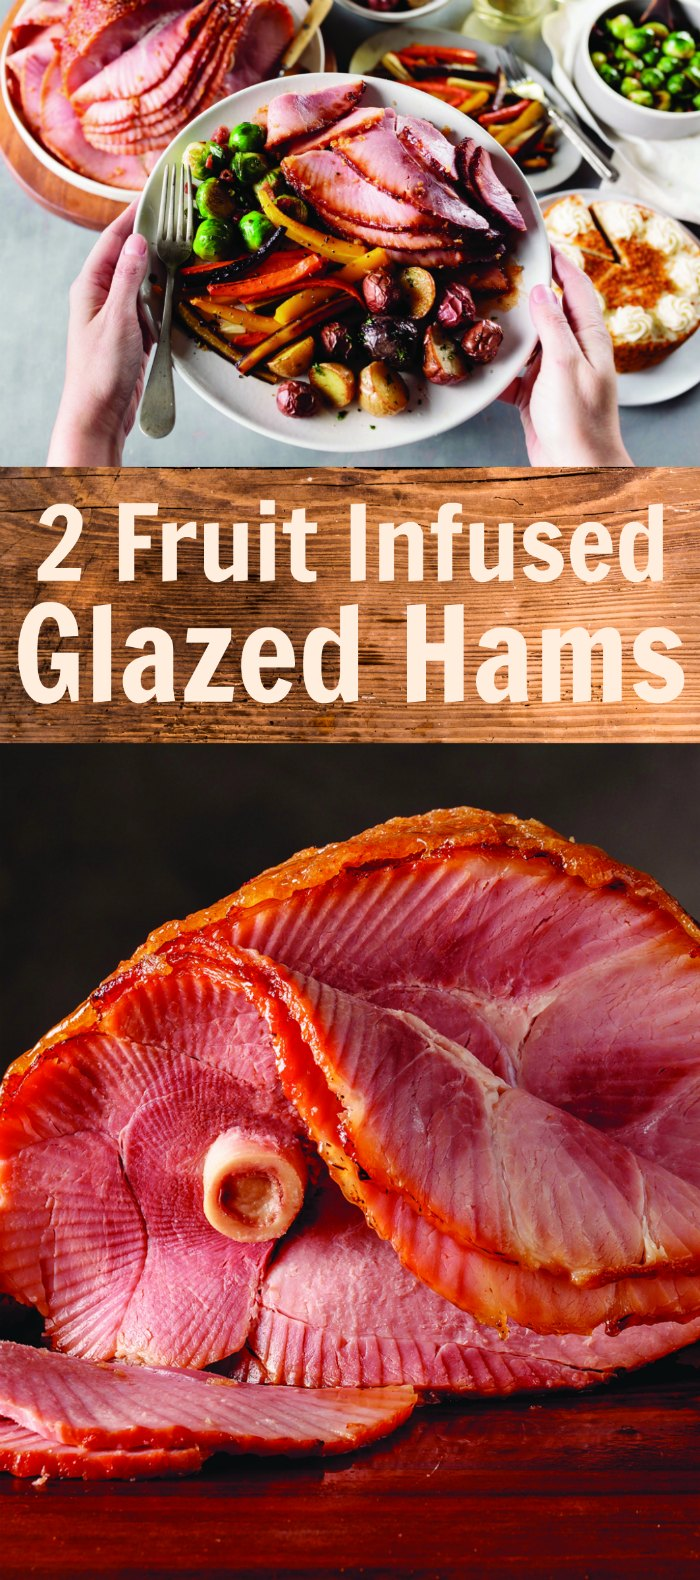 2 Fruit Infused Glazed Ham Recipes - Apricot + Orange and Cranberry. The perfect twist on Easter dinner | Mommy Evolution